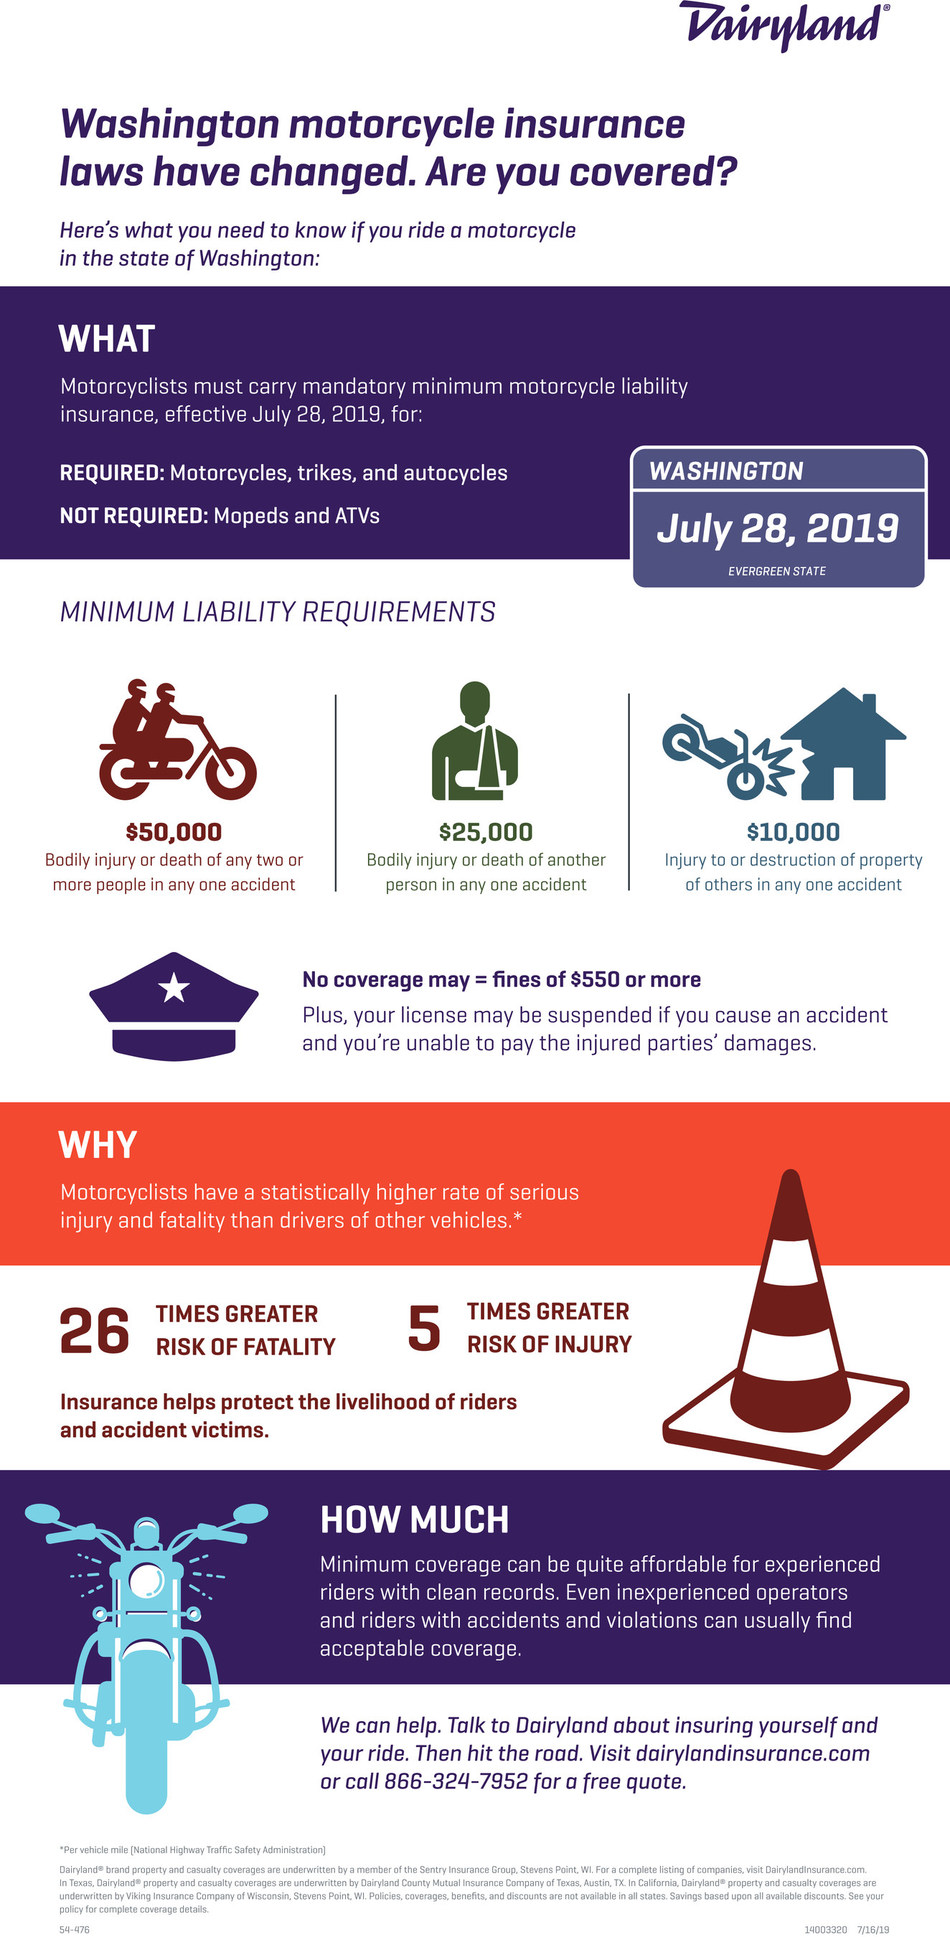 As of July 28, 2019, motorcyclists in the state of Washington must carry proof they have liability insurance coverage. This infographic provides specifics of the new law and how to obey it.